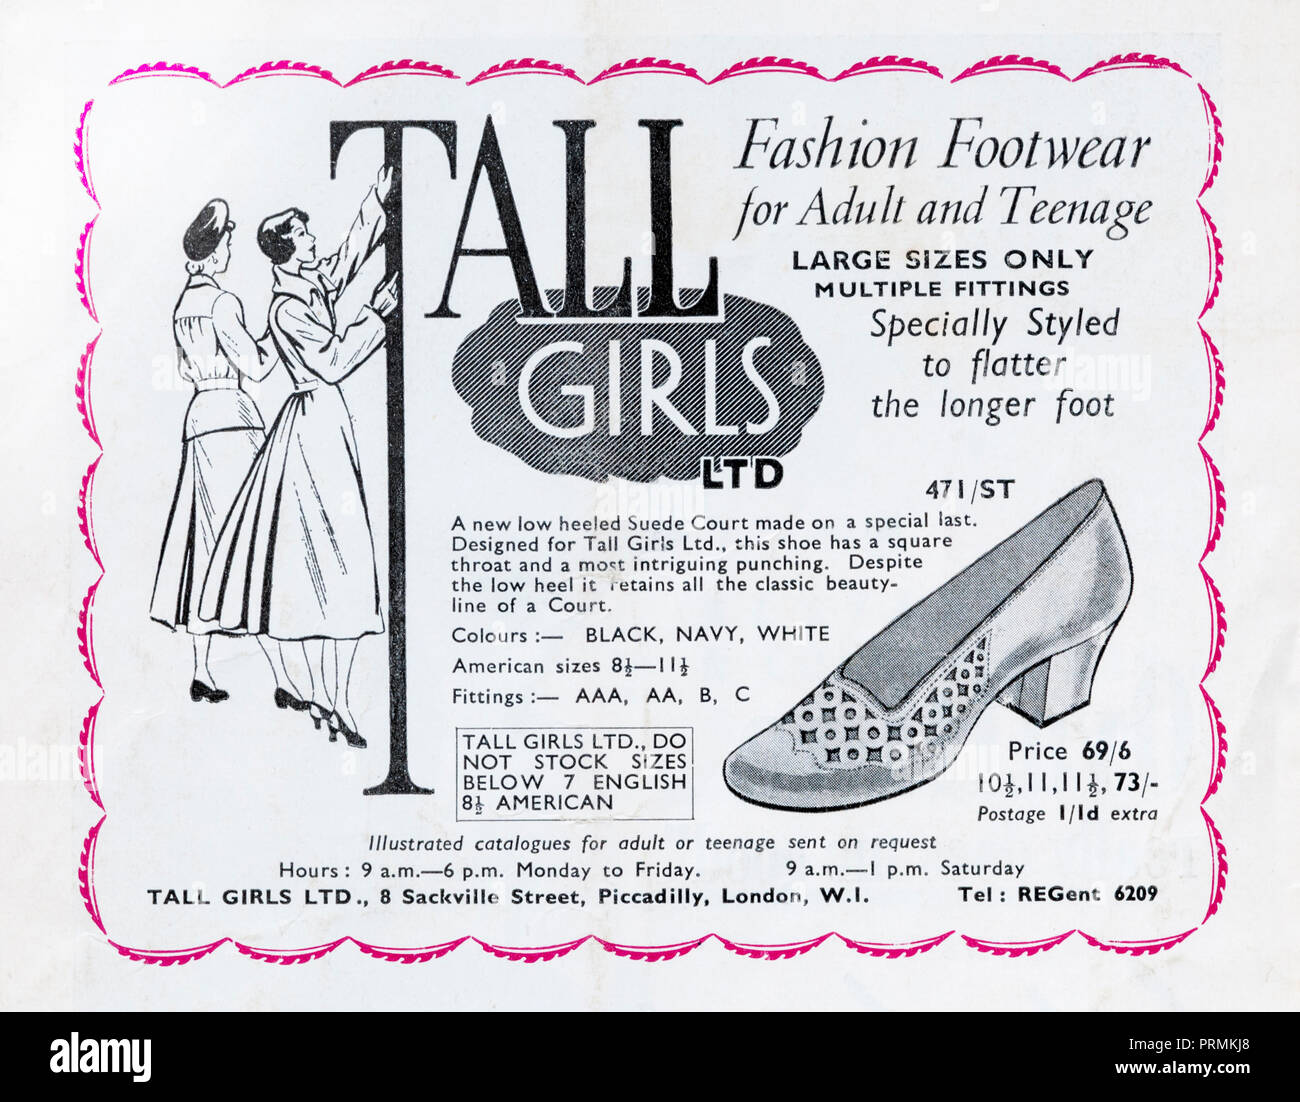 1954 advertisement for Tall Girls Ltd selling low-heeled shoes for tall girls. - Stock Image